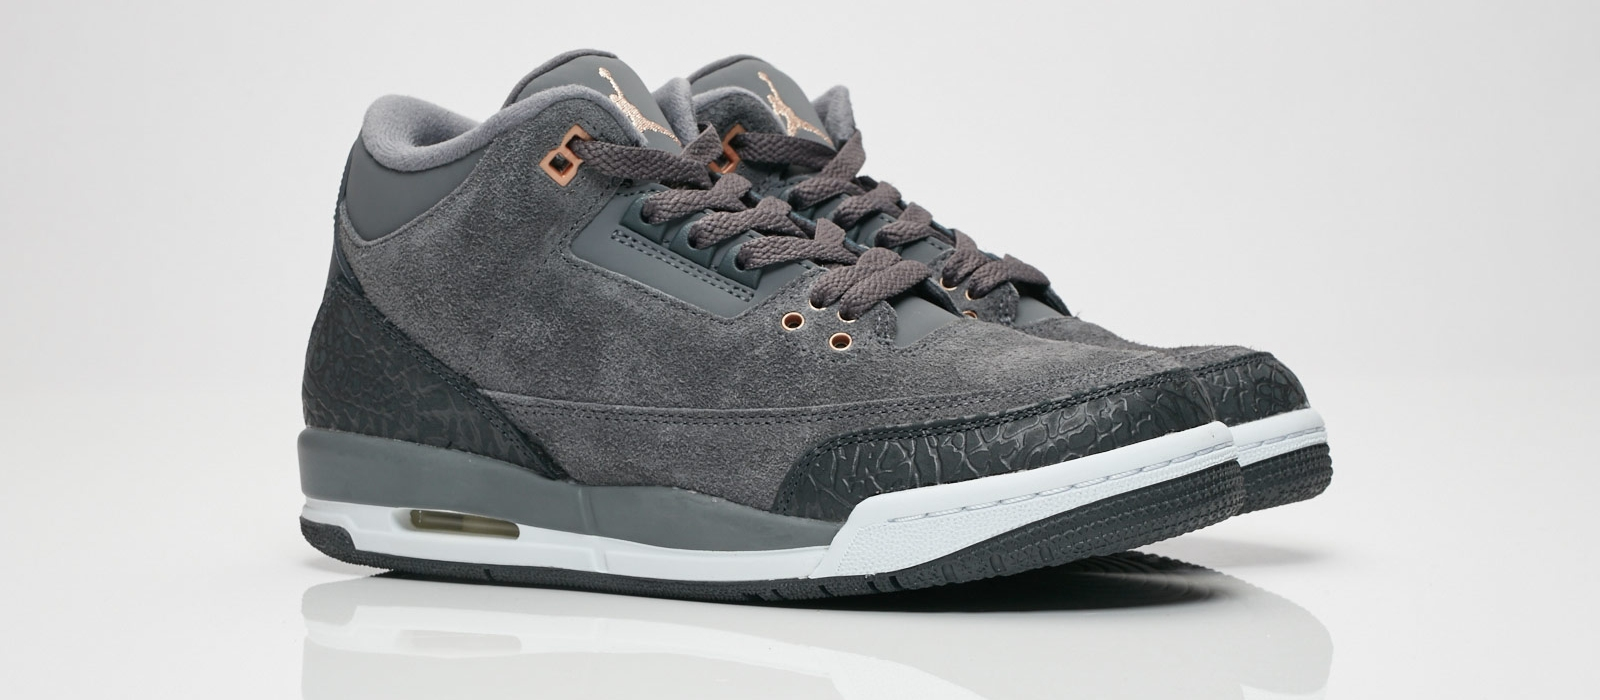 588cf5c9deb1 Air Jordan 3 GS Dark Grey - Air 23 - Air Jordan Release Dates ...